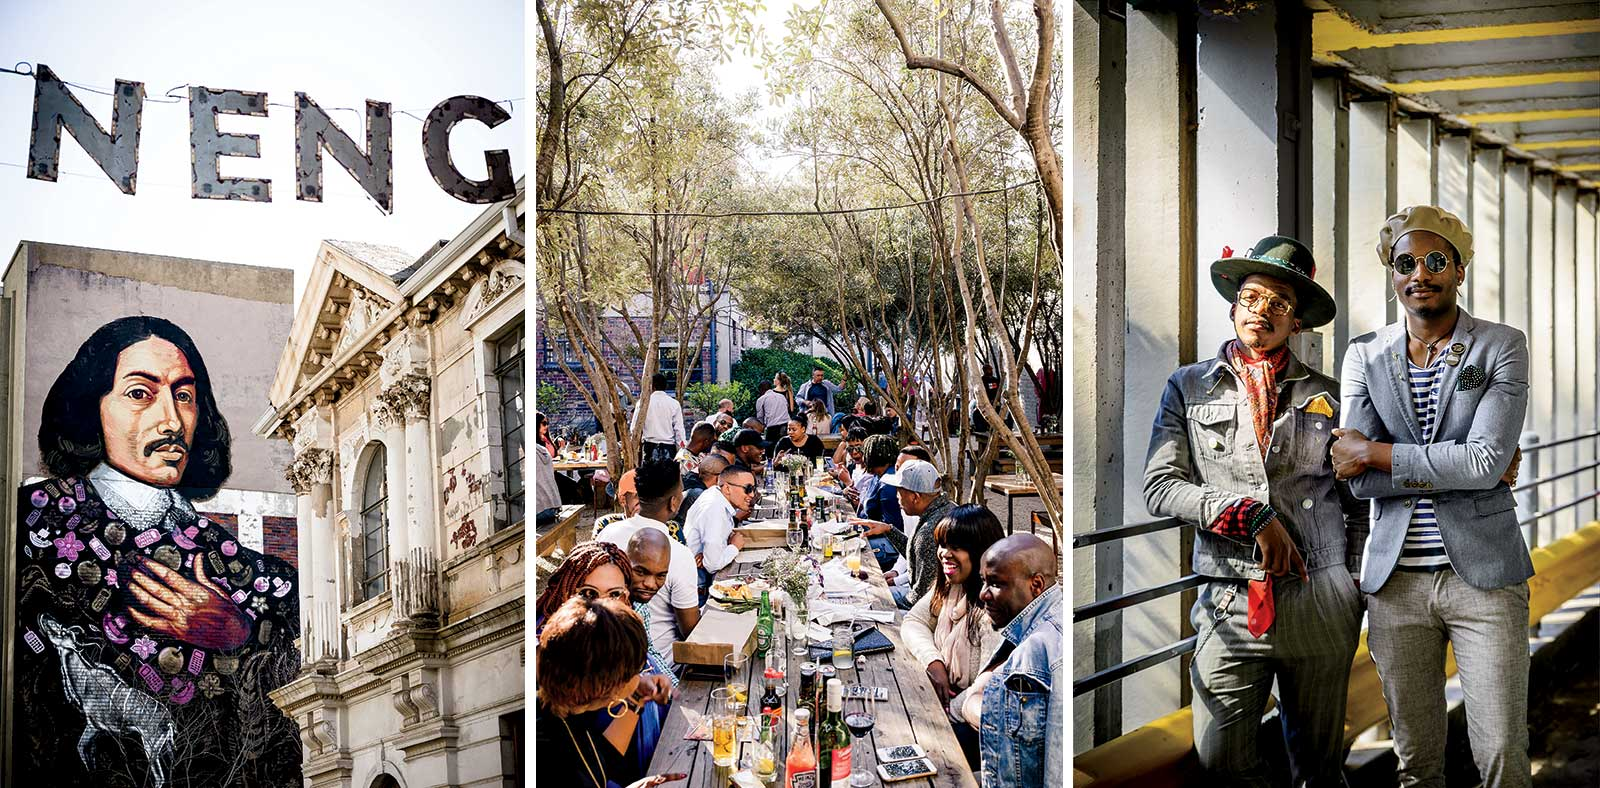 Cosmopolitan Hotel, Market on Main, and Dig Inn chefs in Johannesburg, South Africa